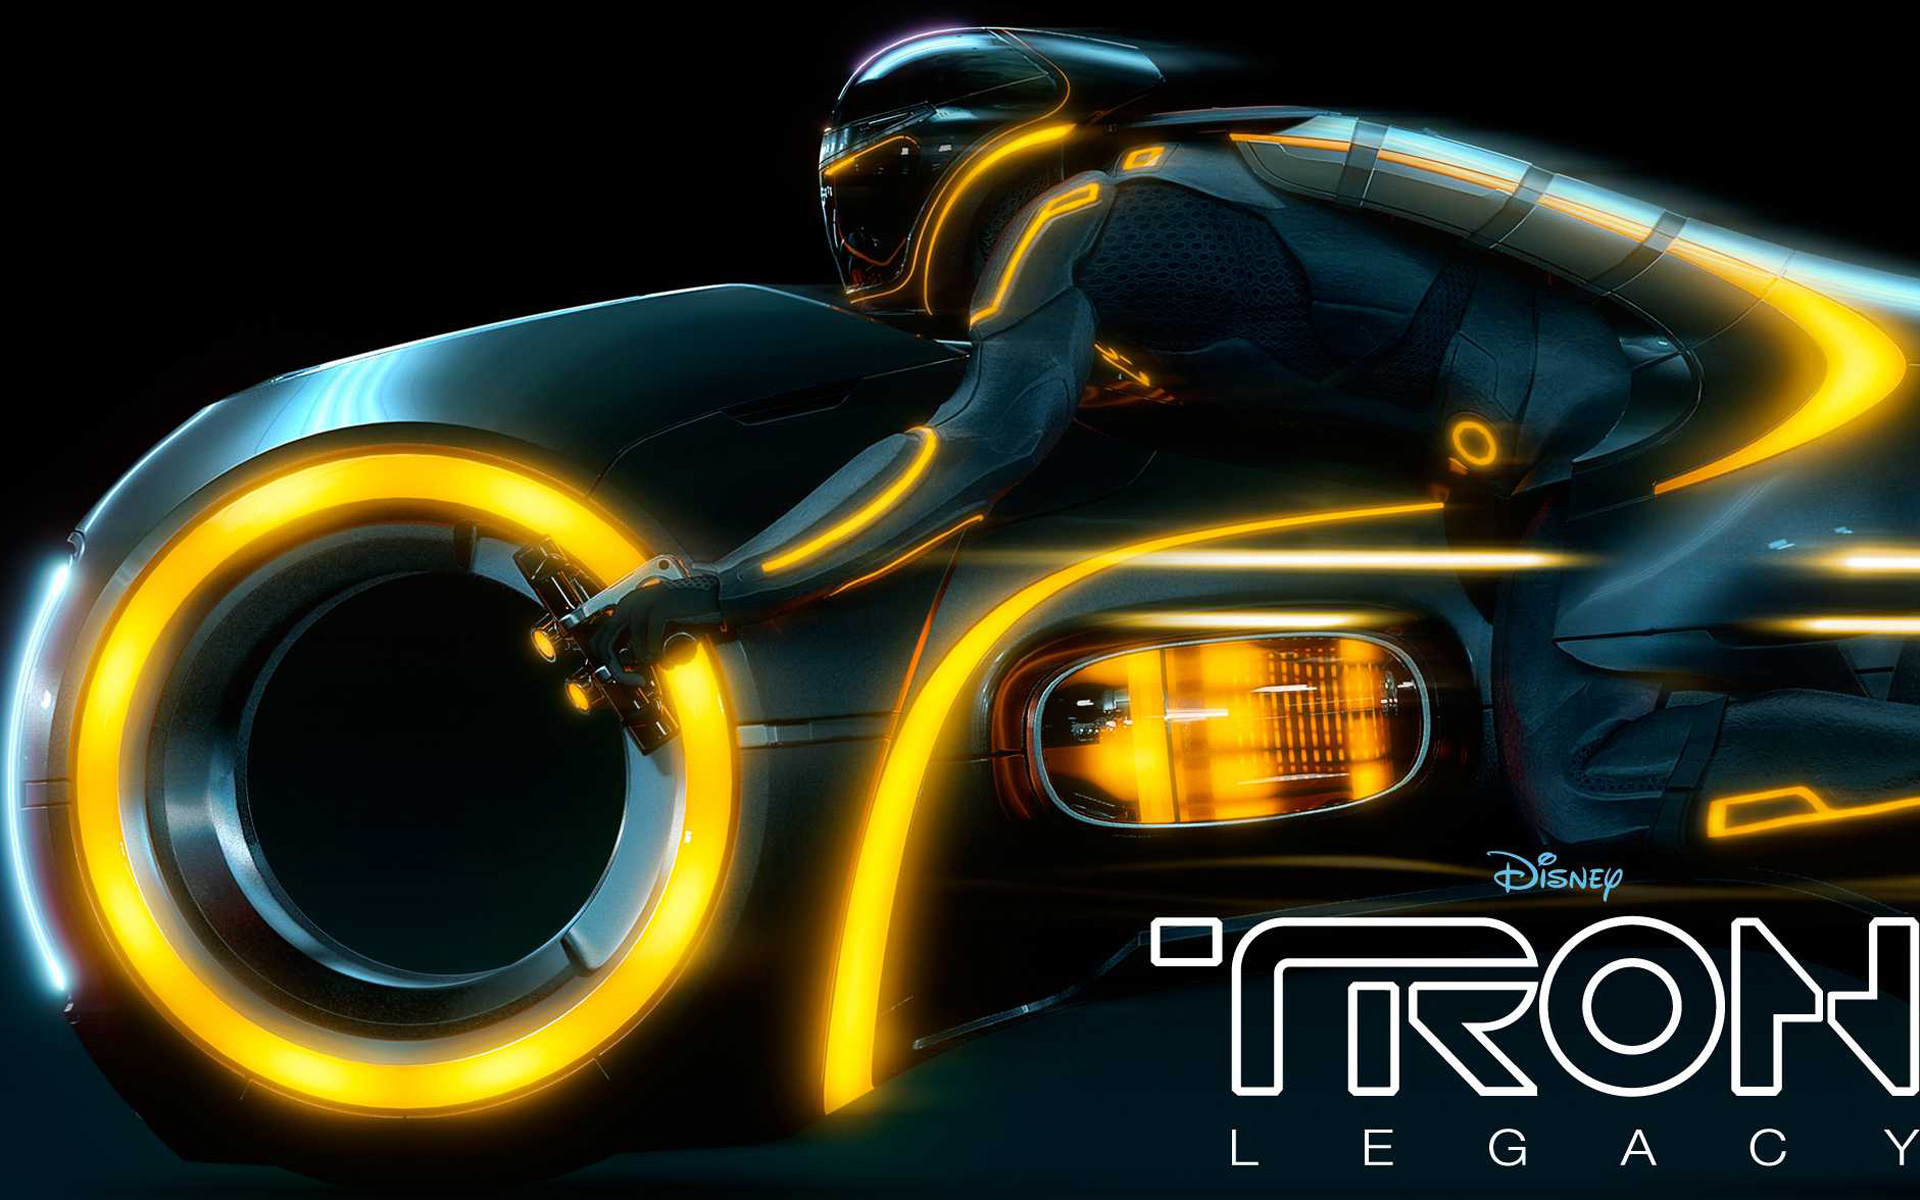 2010 tron evolution wallpapers - photo #18